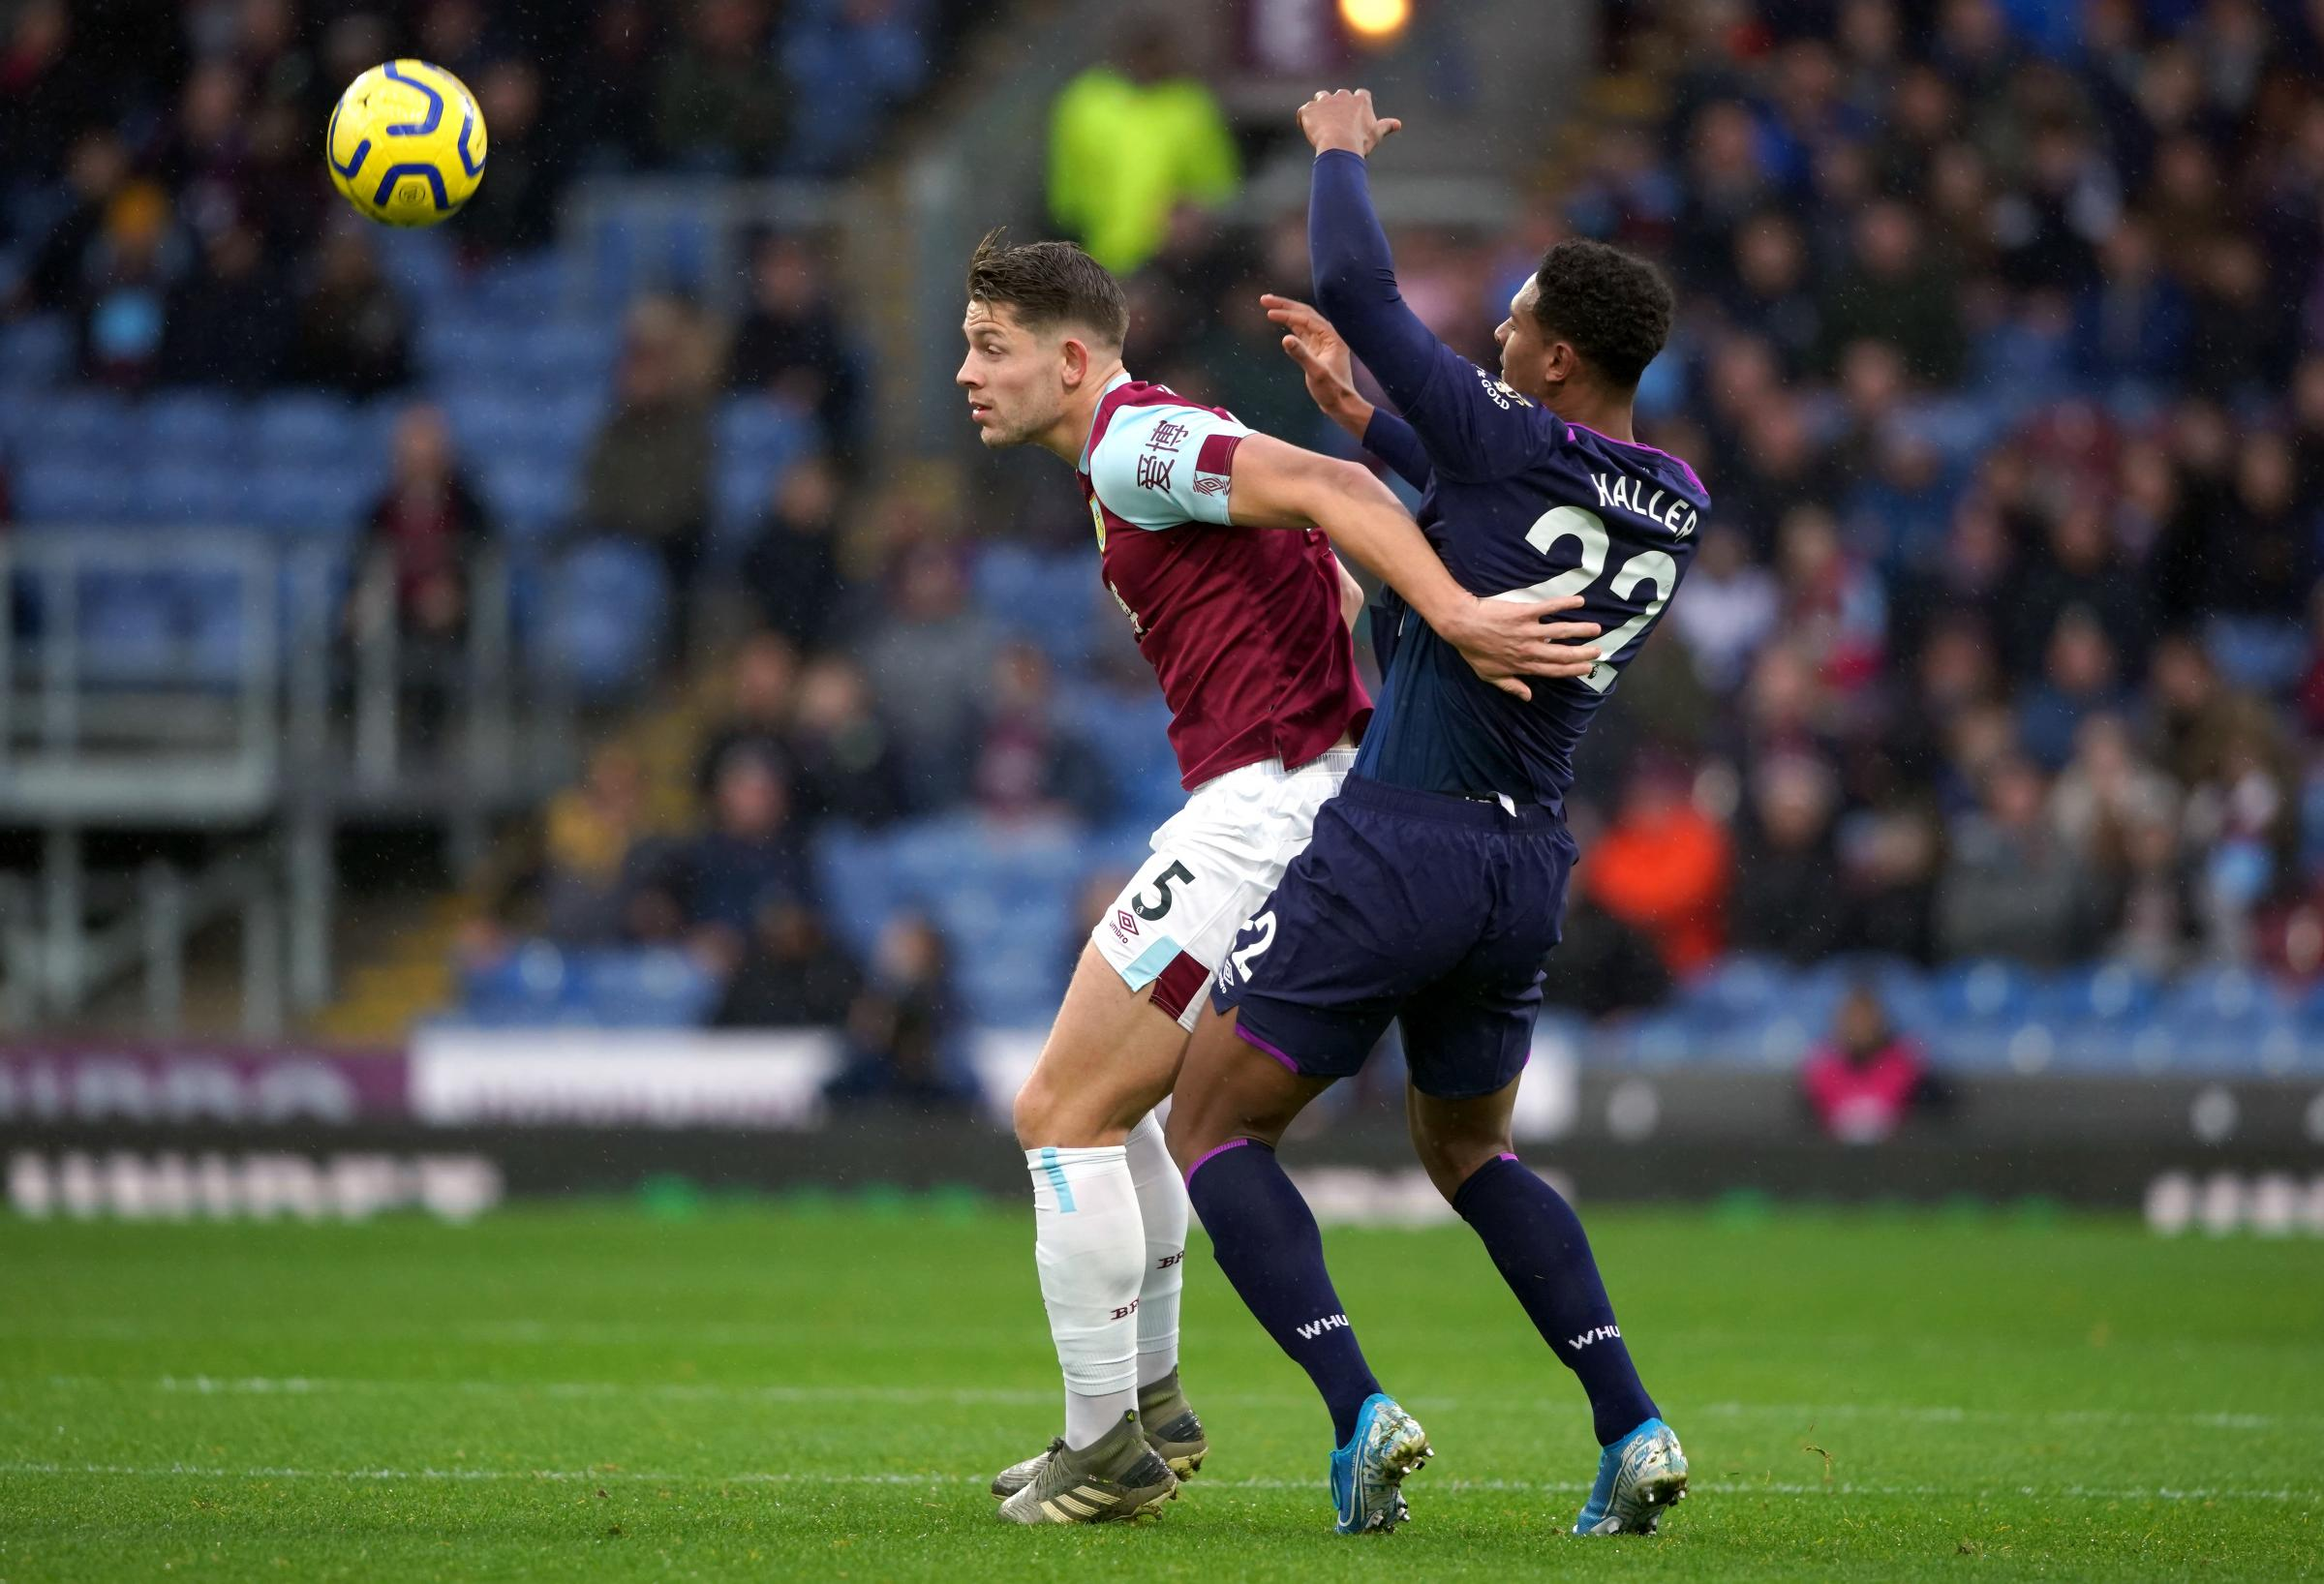 Burnley 3-0 West Ham United: All the action as it happened